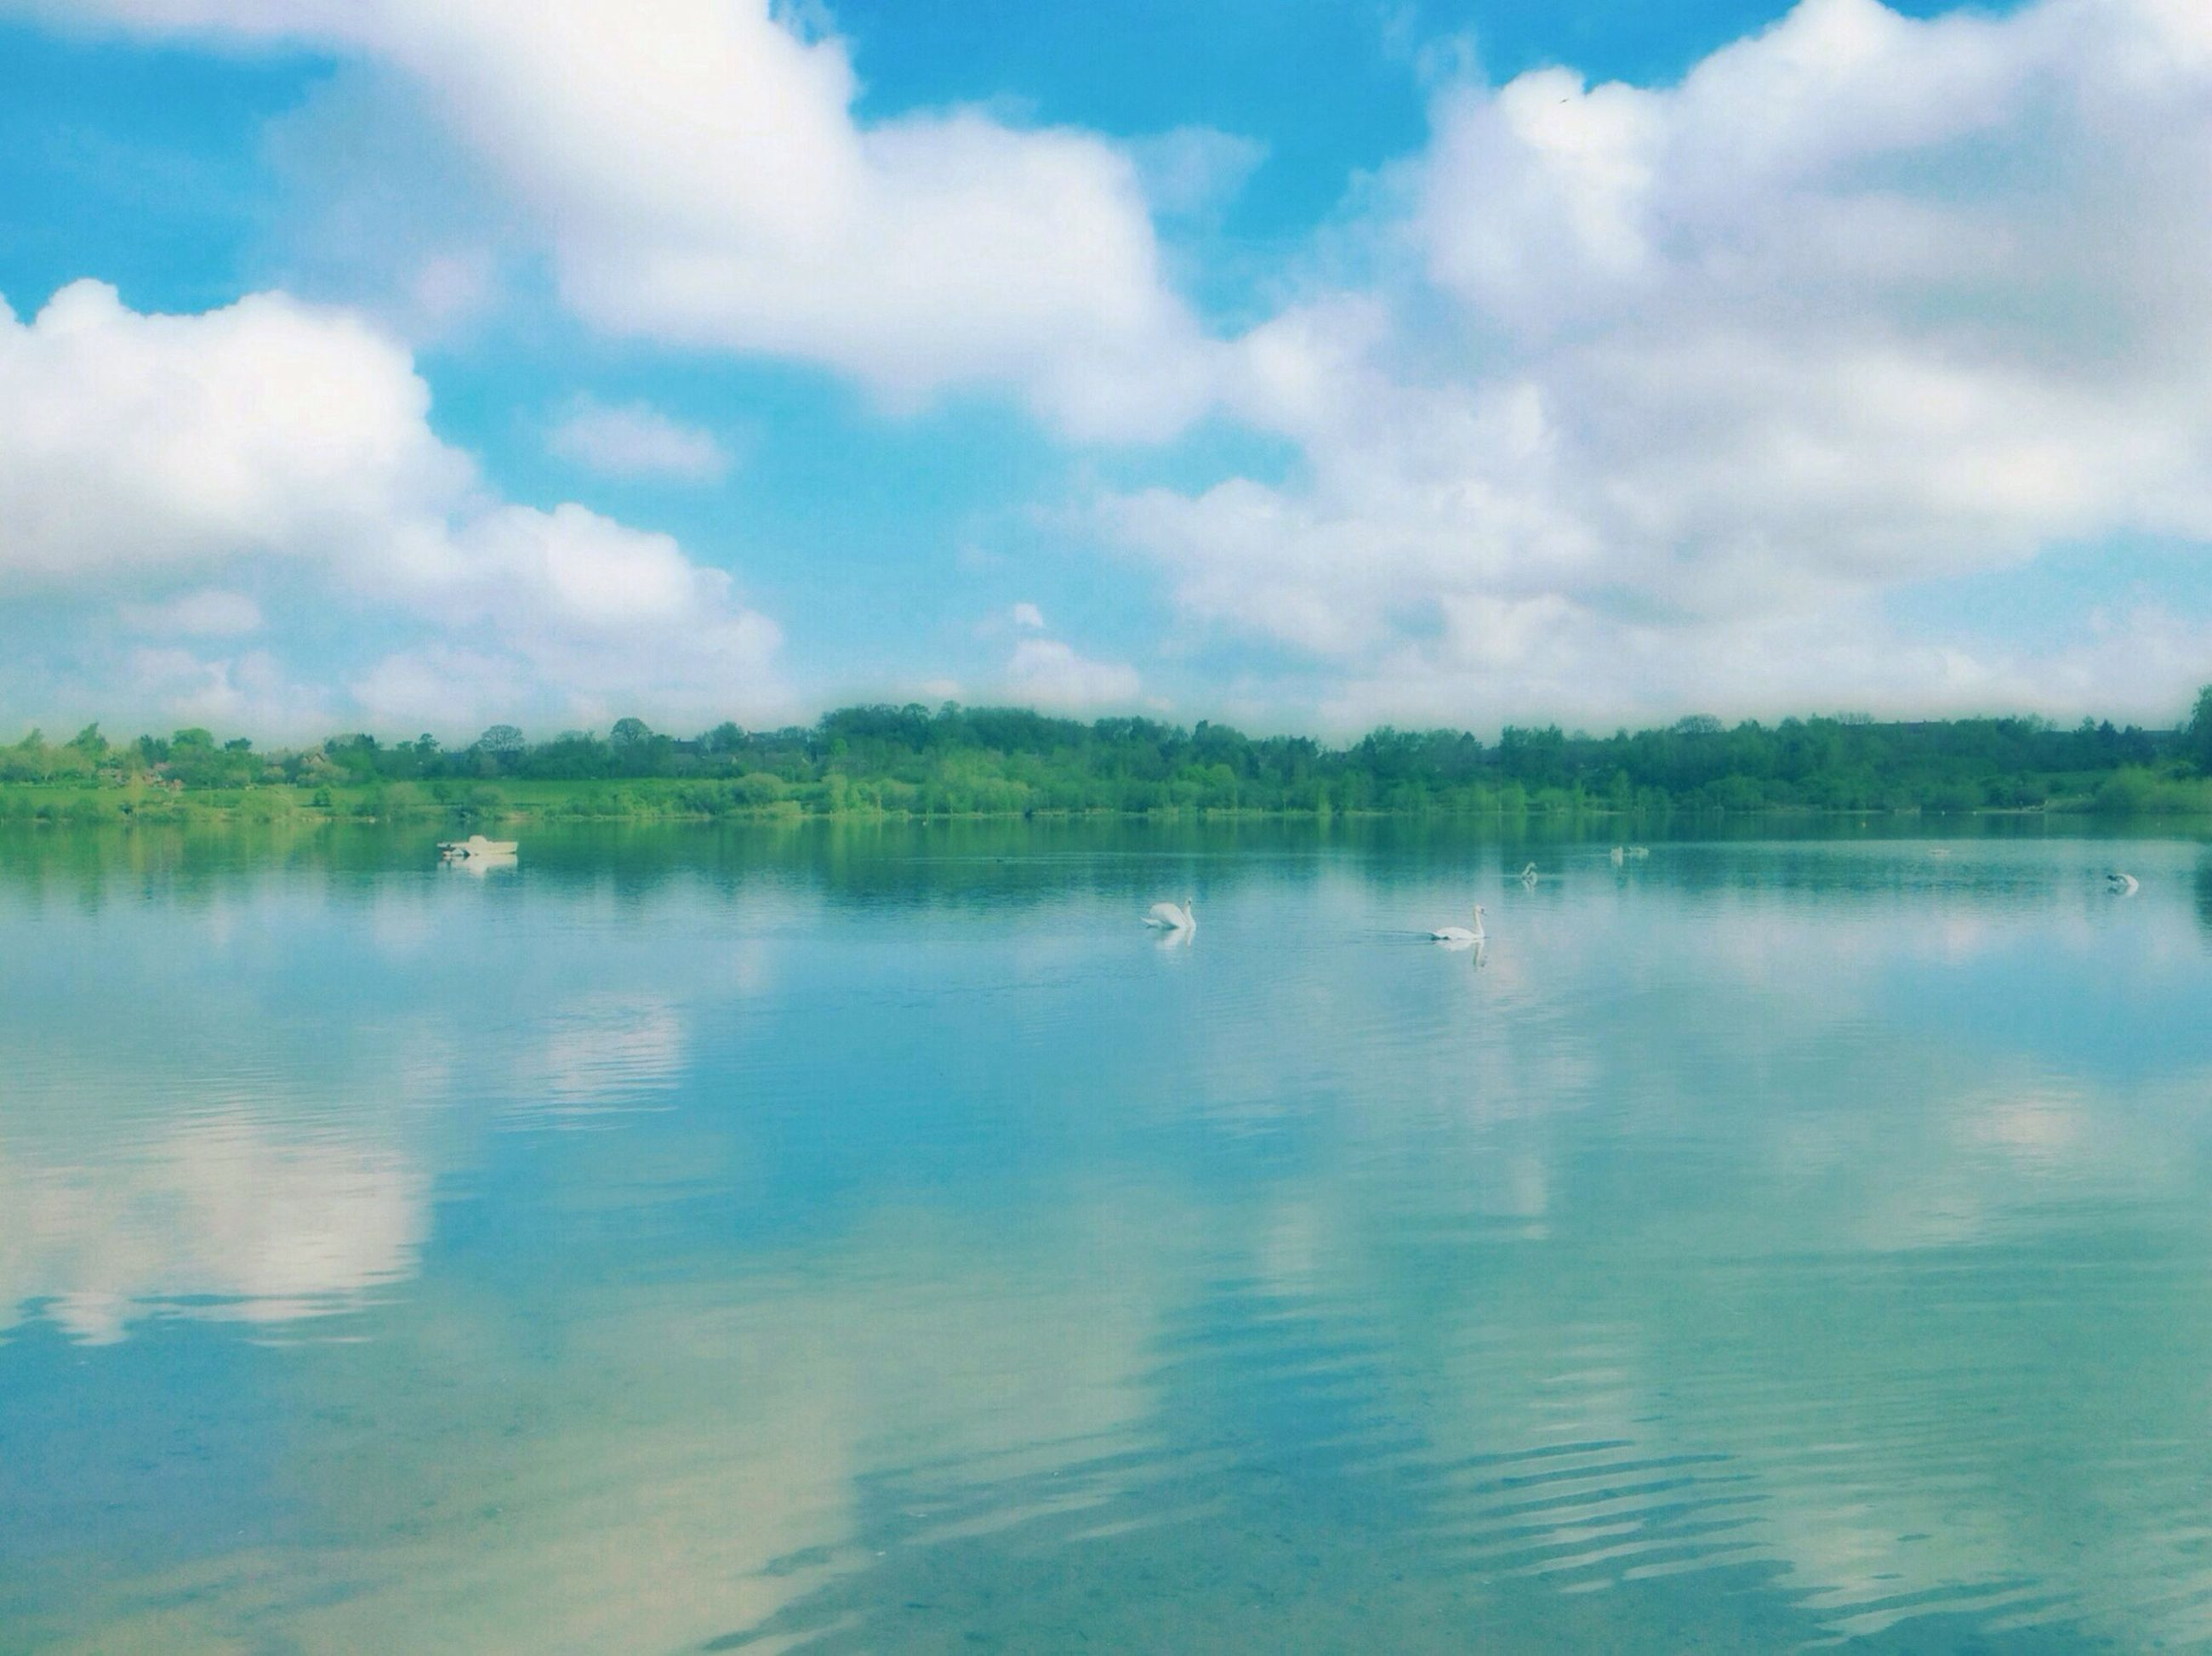 water, sky, tranquil scene, tranquility, cloud - sky, scenics, lake, beauty in nature, waterfront, reflection, nature, cloud, cloudy, blue, idyllic, rippled, tree, non-urban scene, day, outdoors